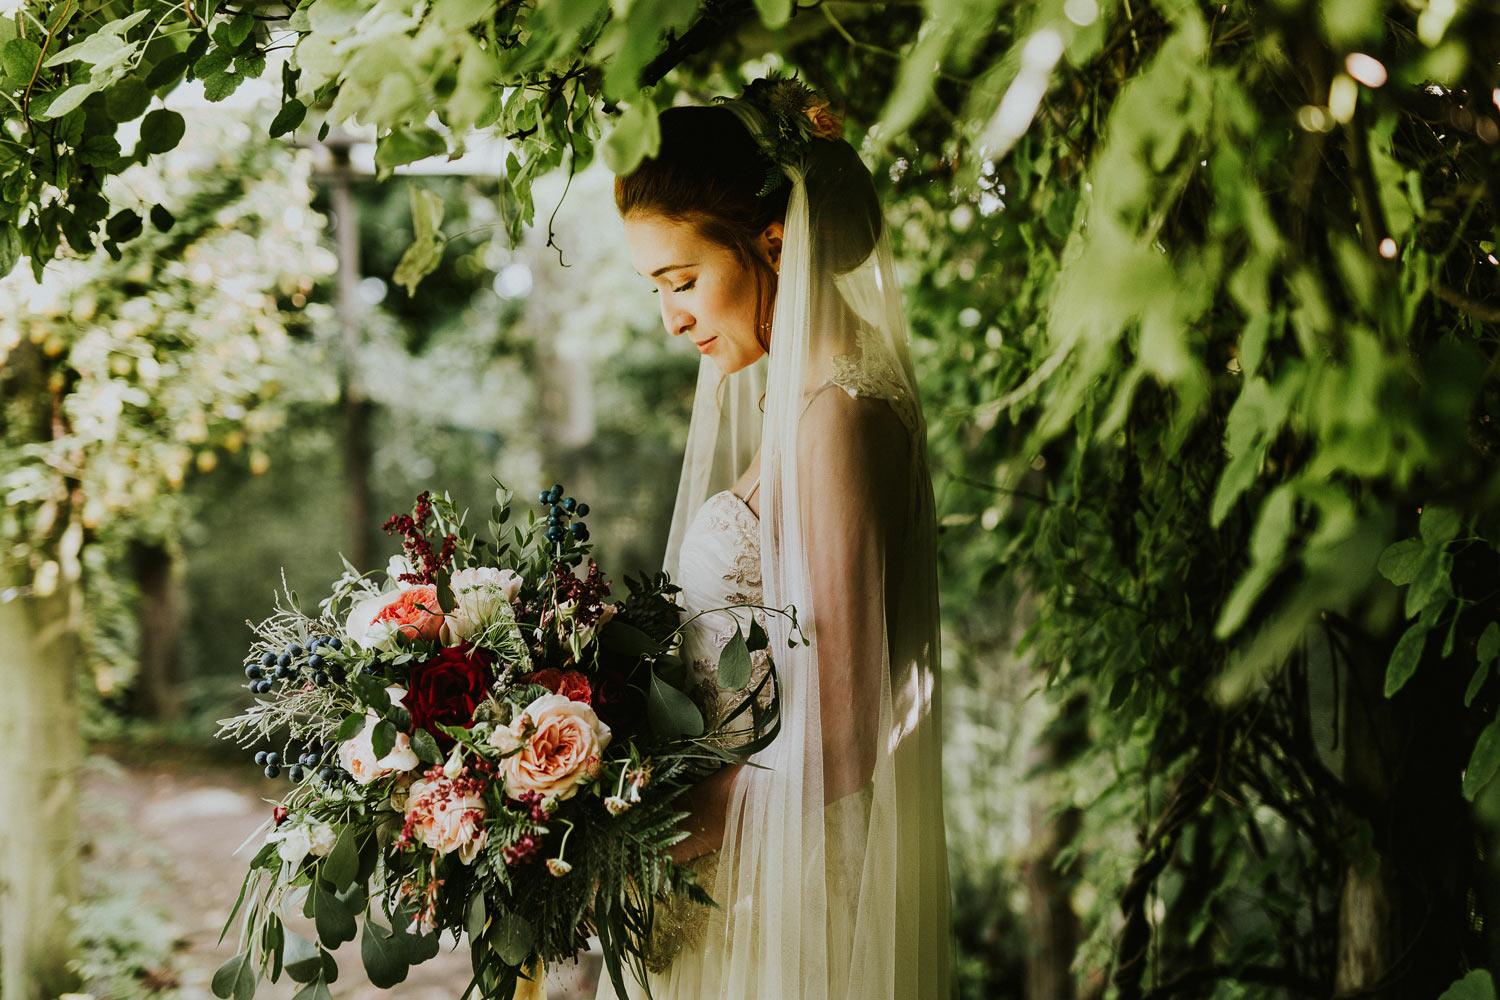 Woodland theme bride and bouquet under tree